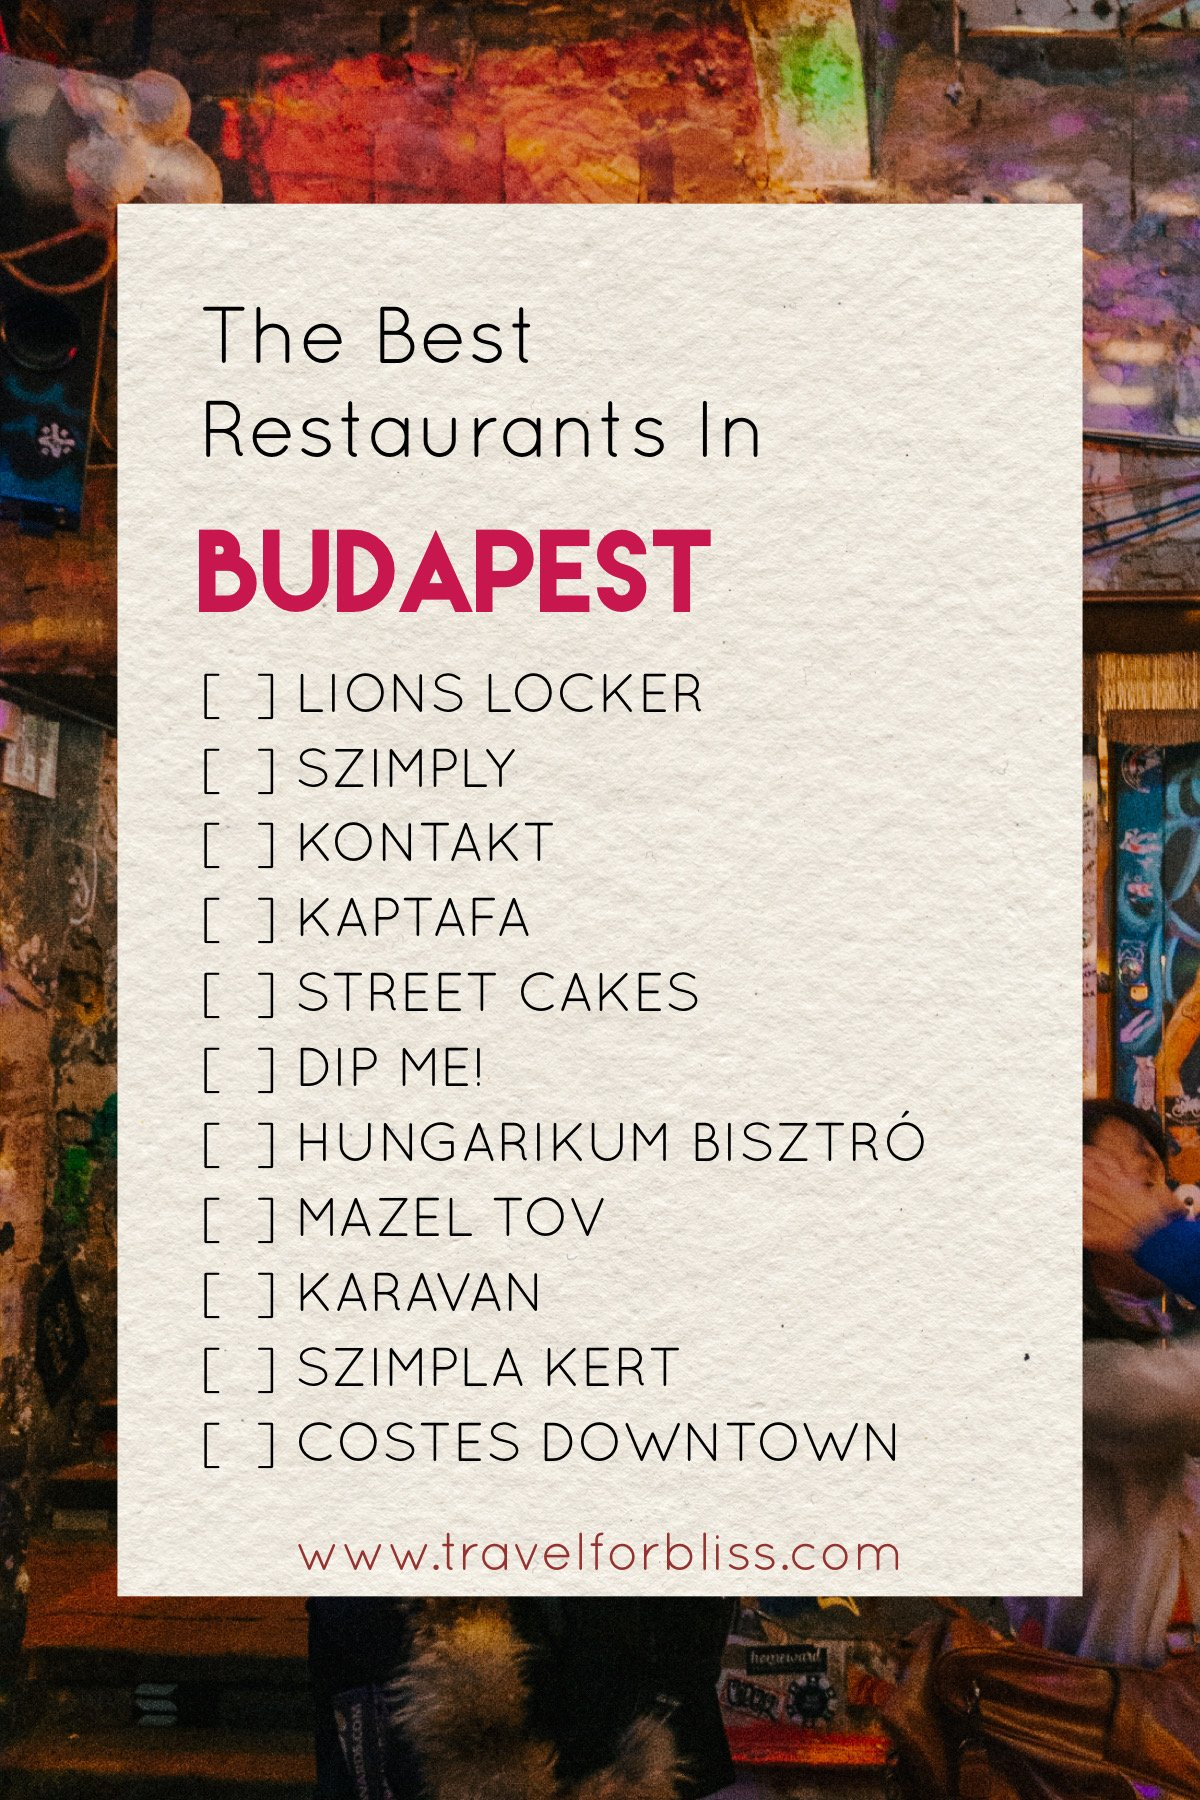 The Best Restaurants In Budapest